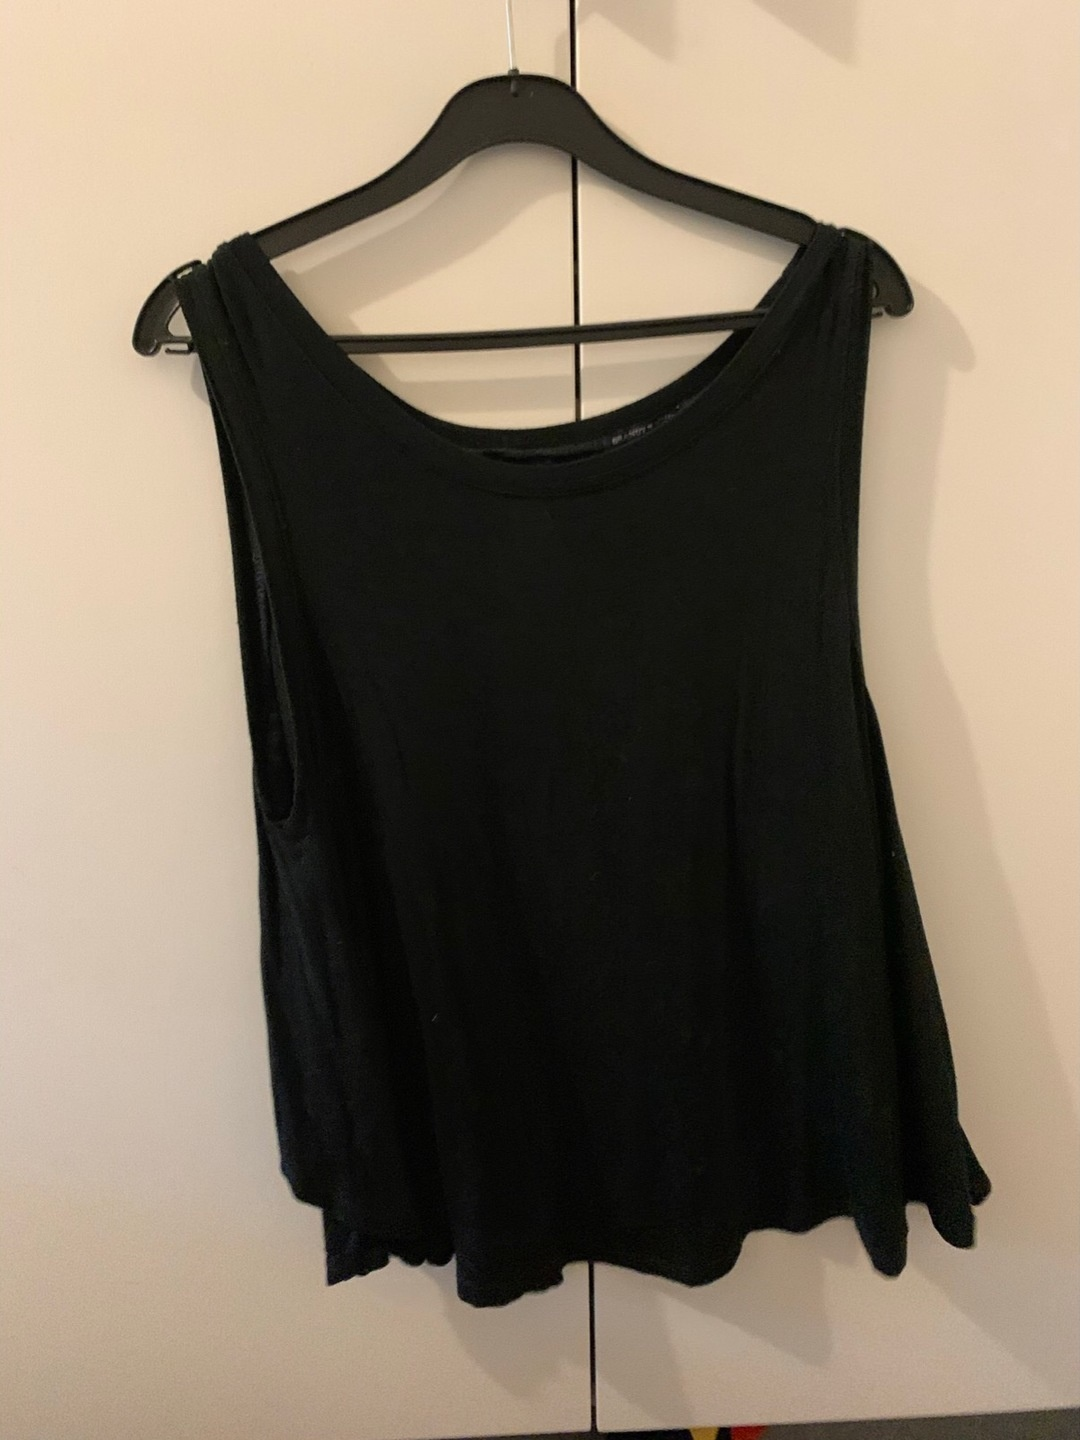 Damers toppe og t-shirts - BRANDY MELVILLE photo 1